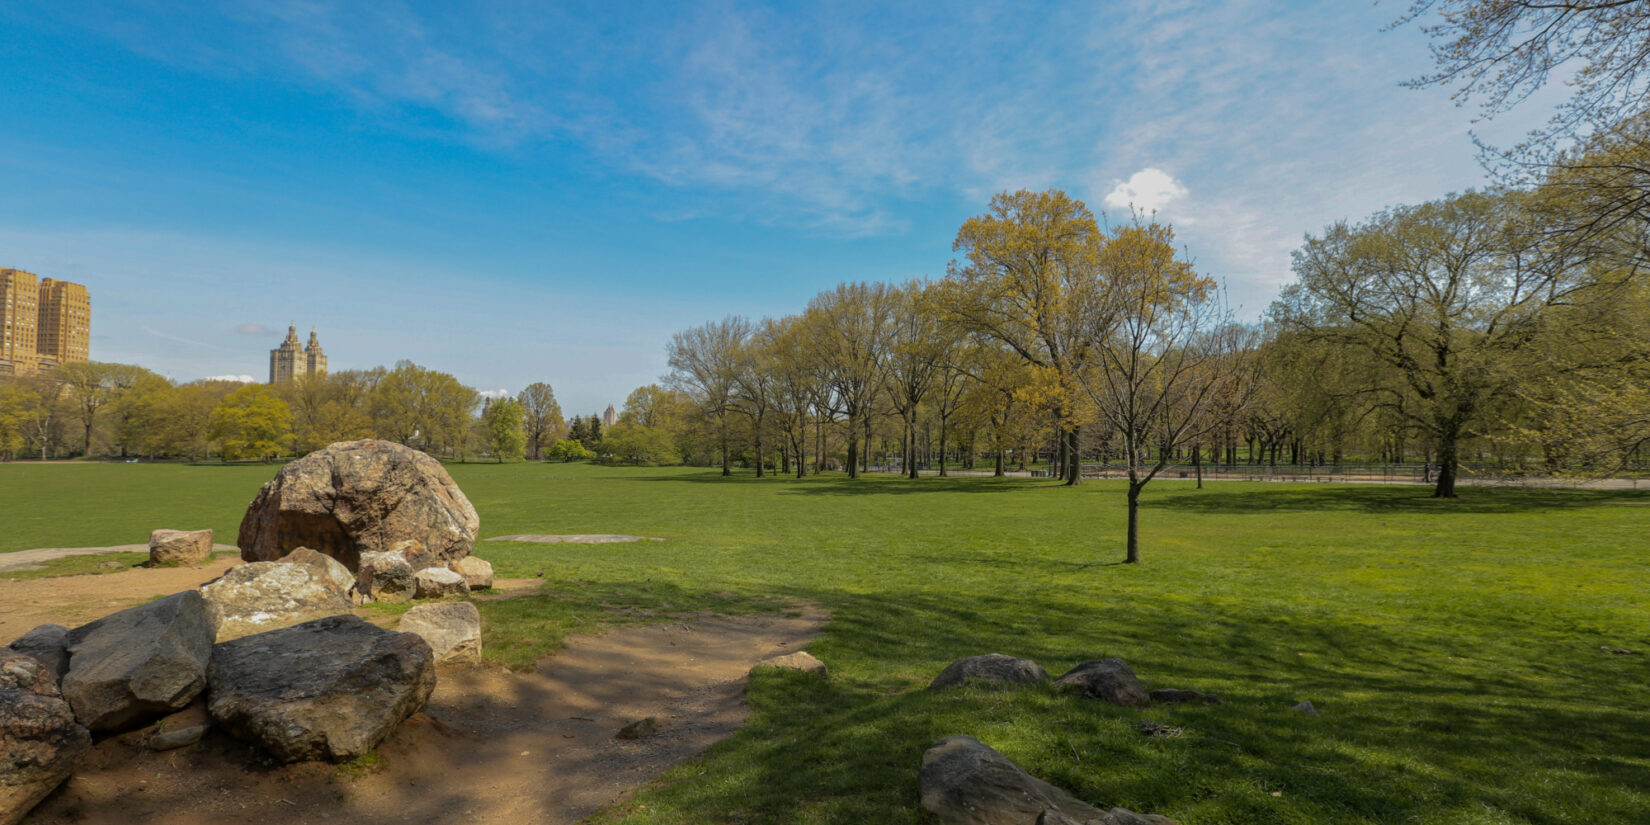 The Sheep Meadow in spring, pictured empty of park visitors